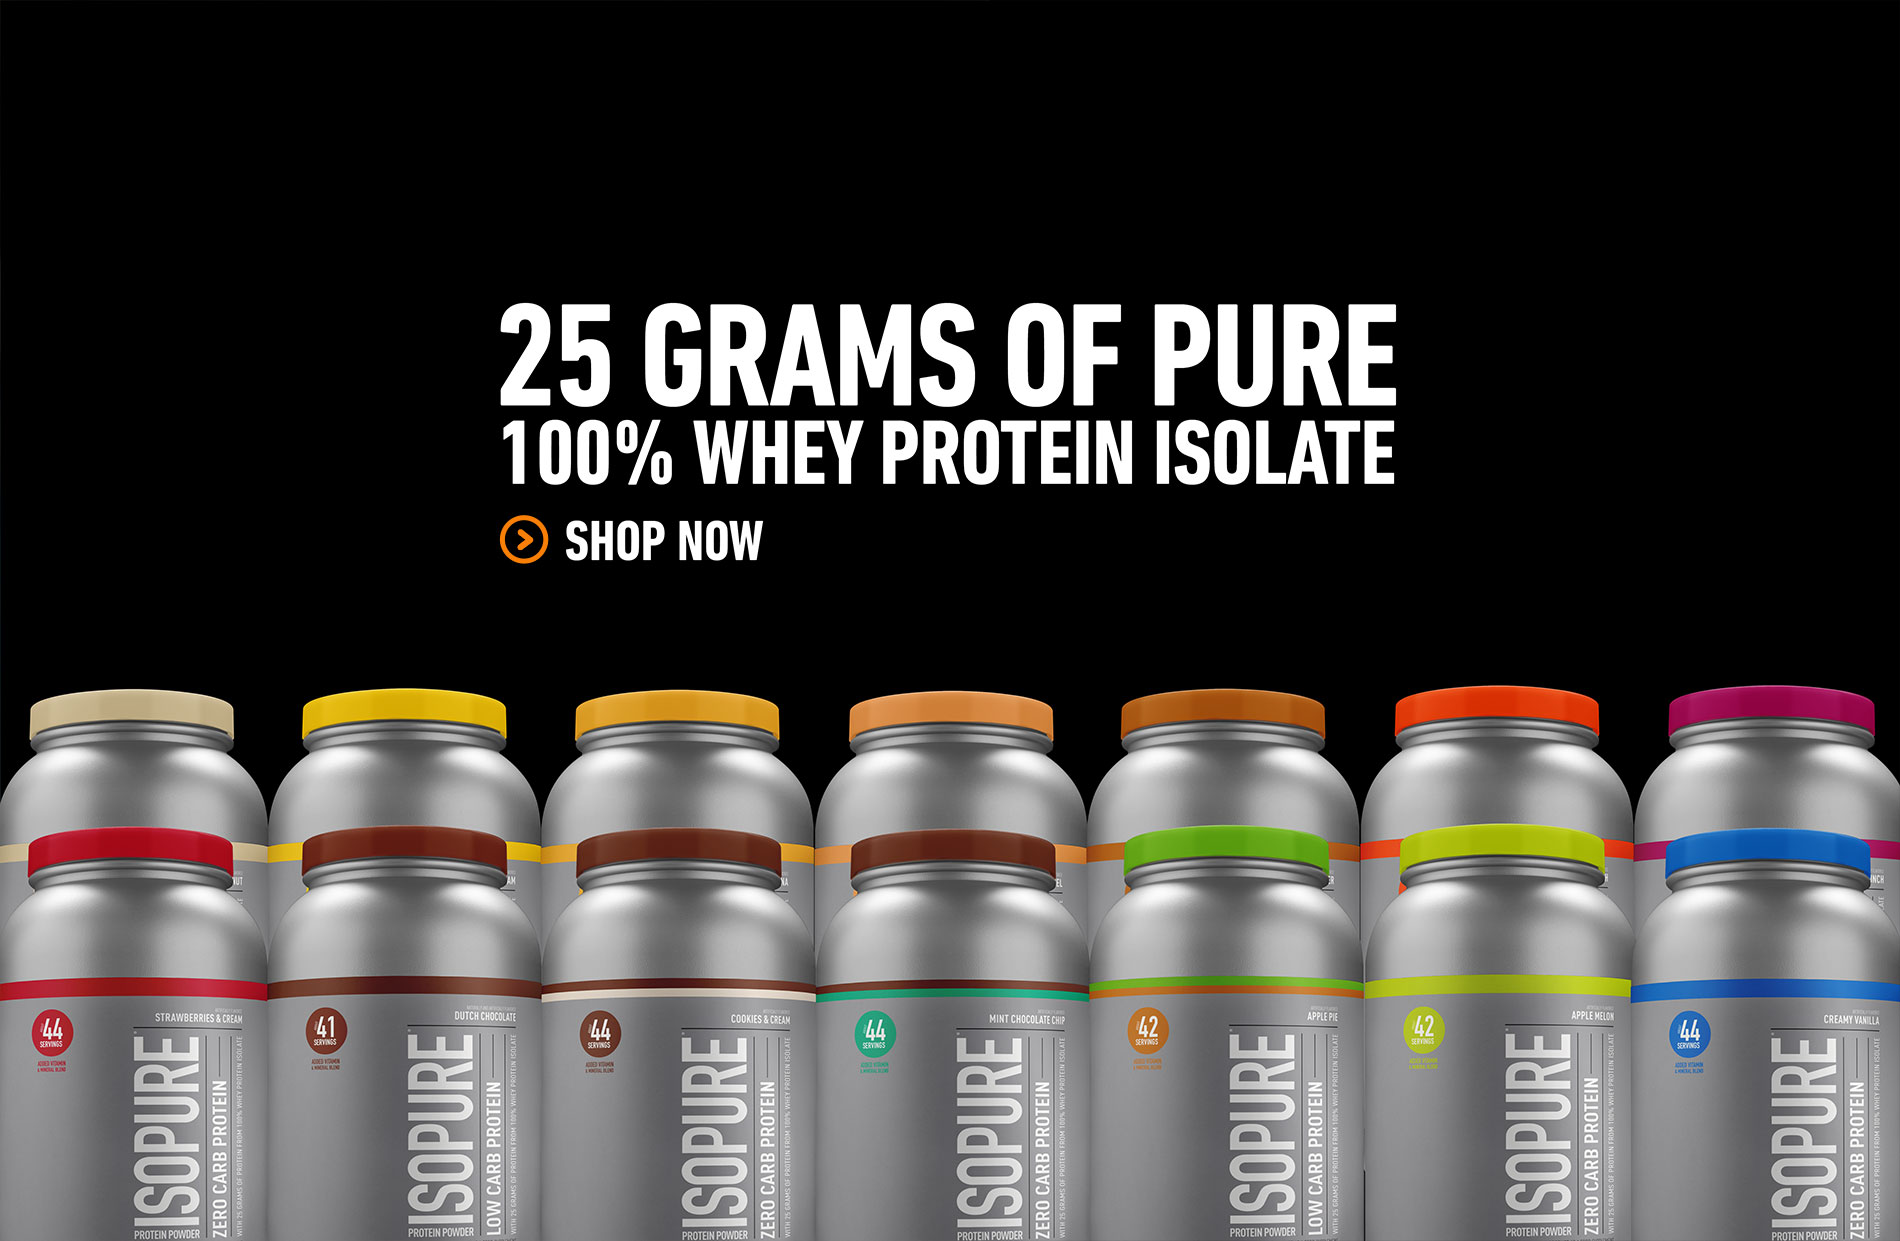 25G OF PURE 100% WHEY PROTEIN ISOLATE